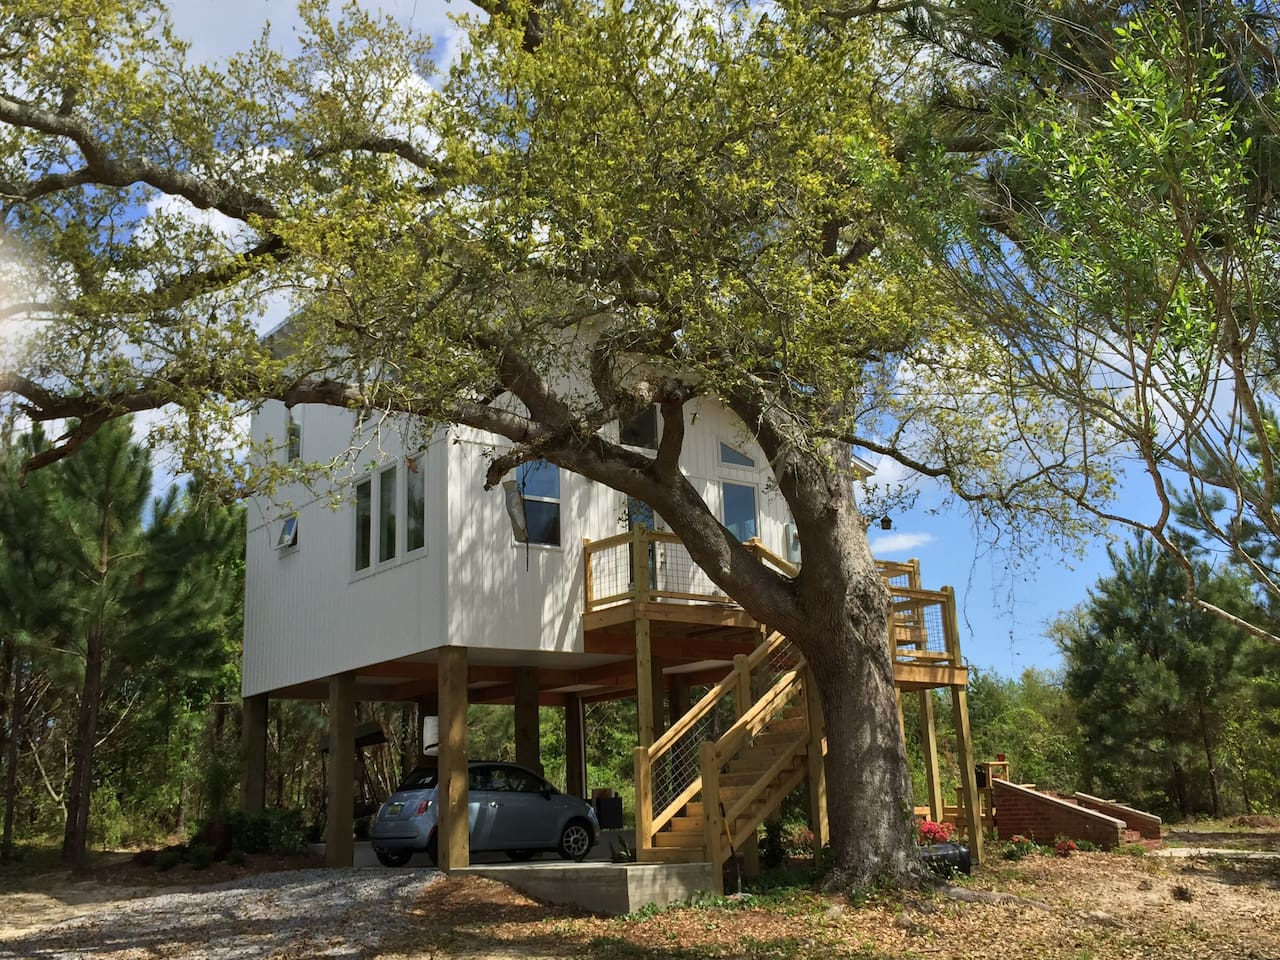 ECO Beach House nestled in a 100+ yr old Live Oak